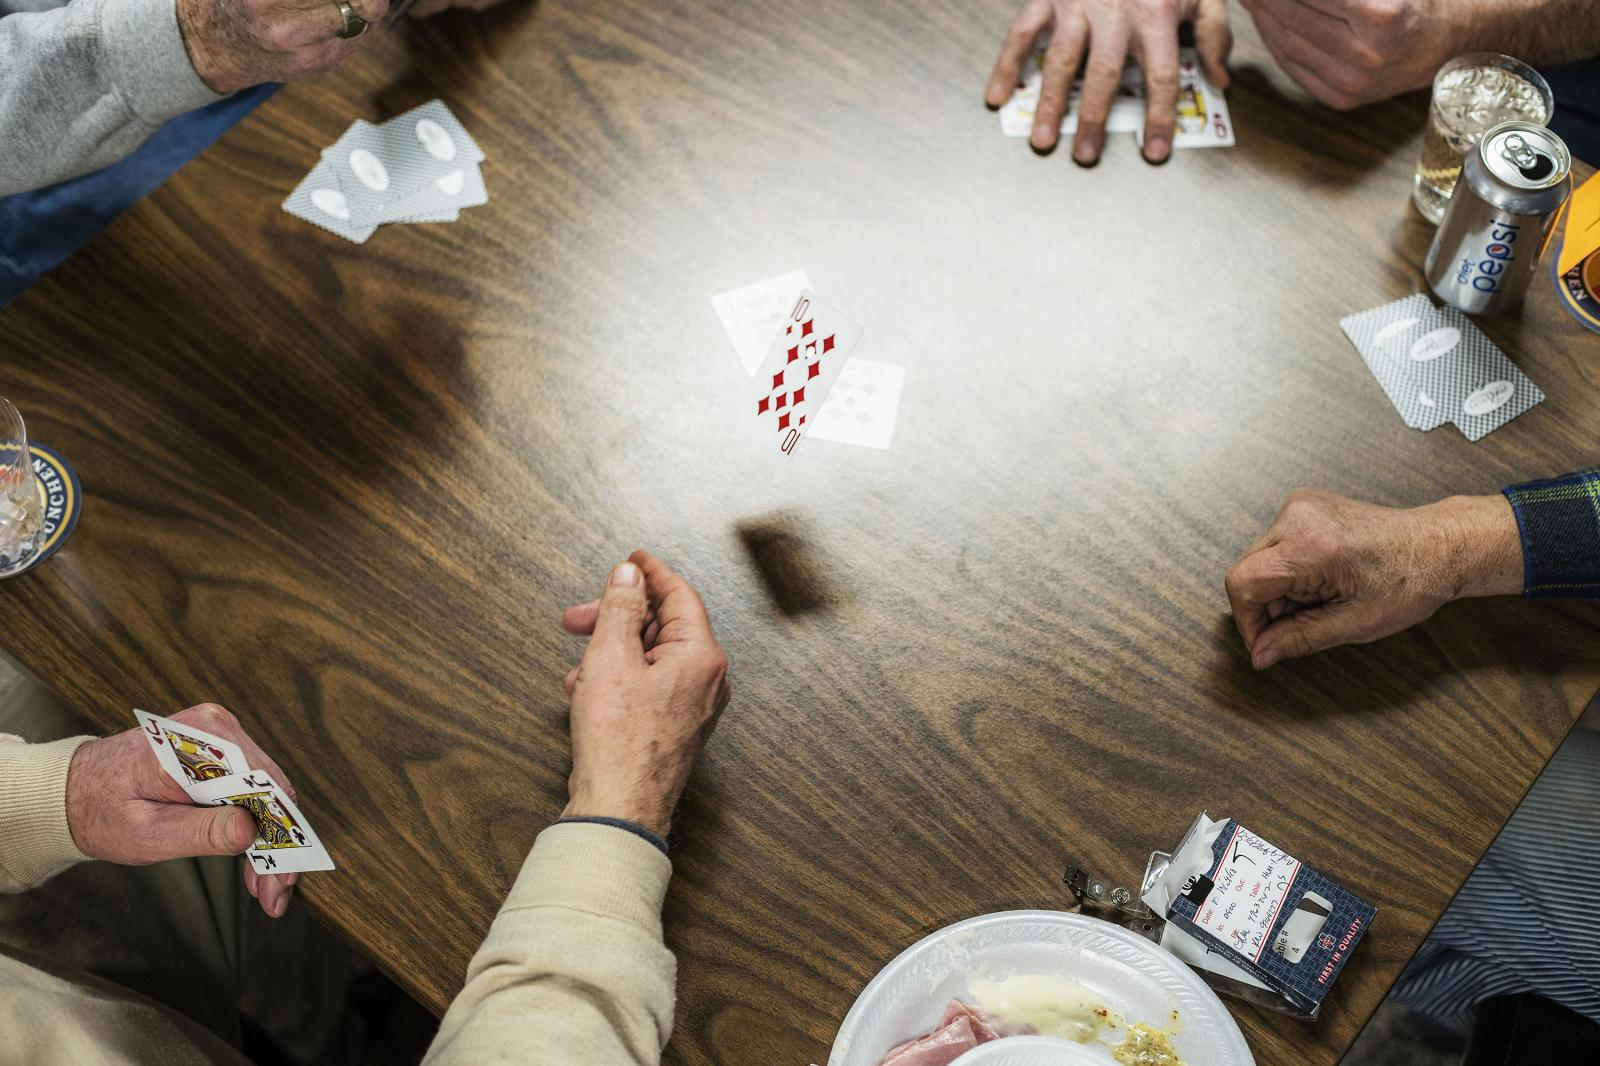 Jim Neswold of West Branch lays a ten of diamonds during a community euchre game night at the American Legion hall in Lone Tree on Wednesday, March 6, 2019. KC McGinnis for The Gazette